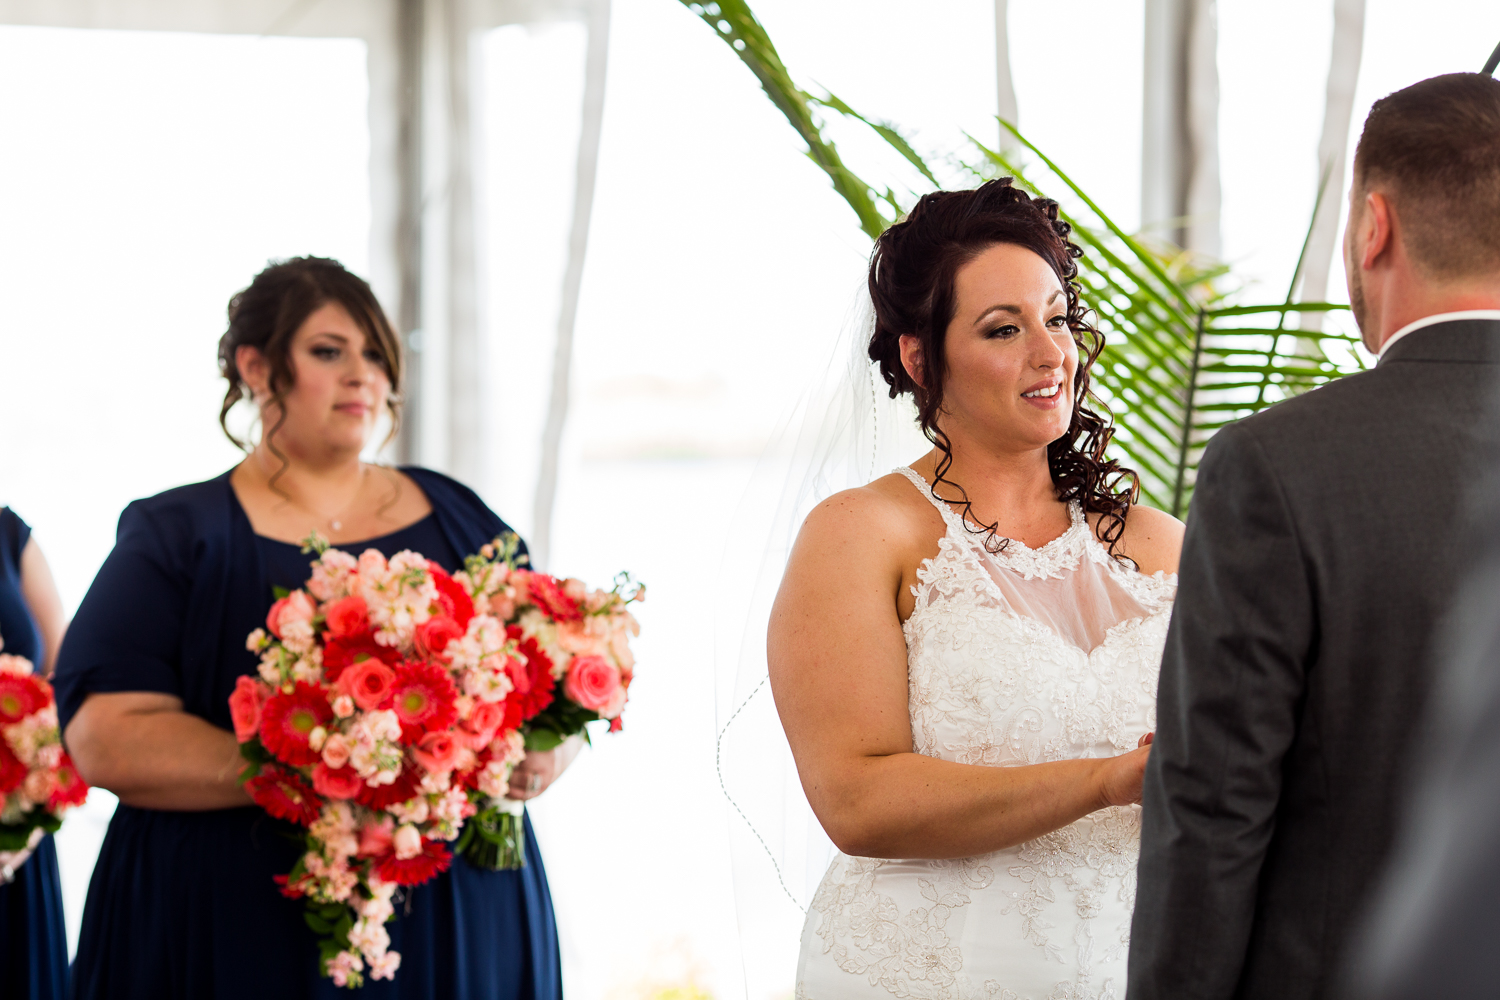 Bride looks at groom and says vows during wedding ceremony.